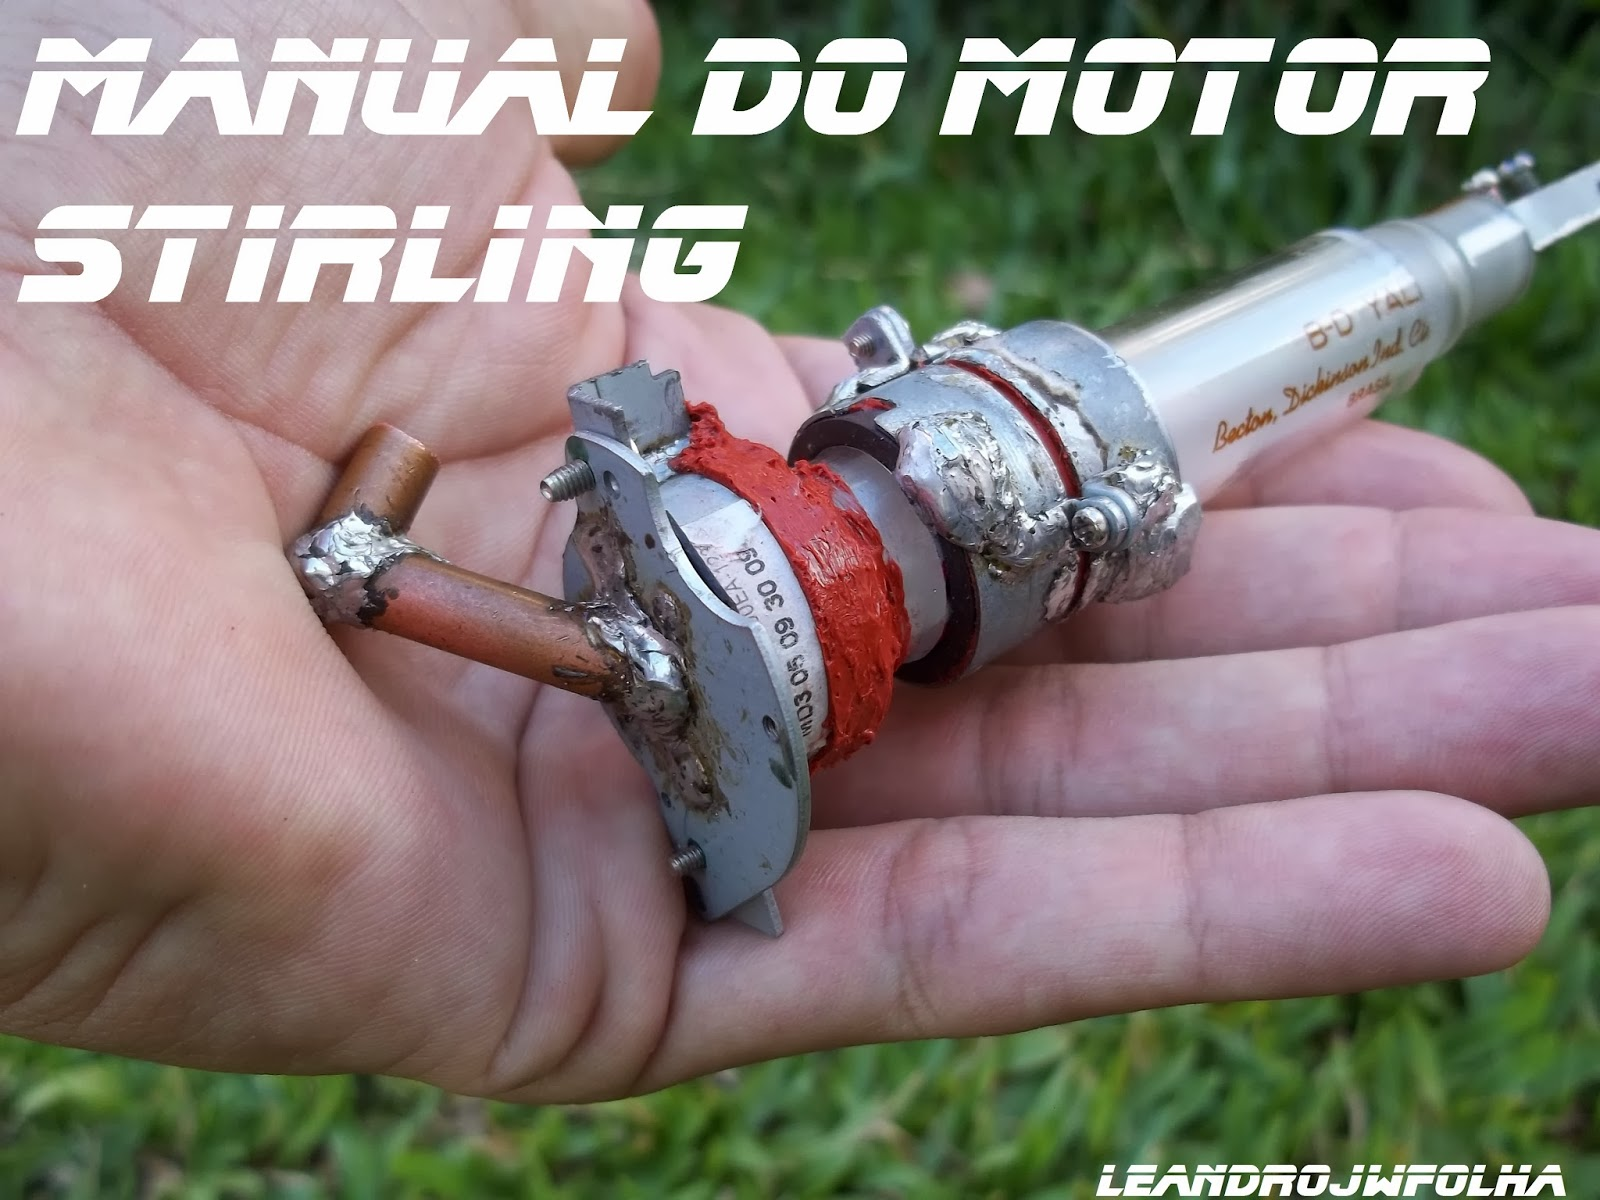 Manual do motor Stirling, cilindro frio do motor Alfa